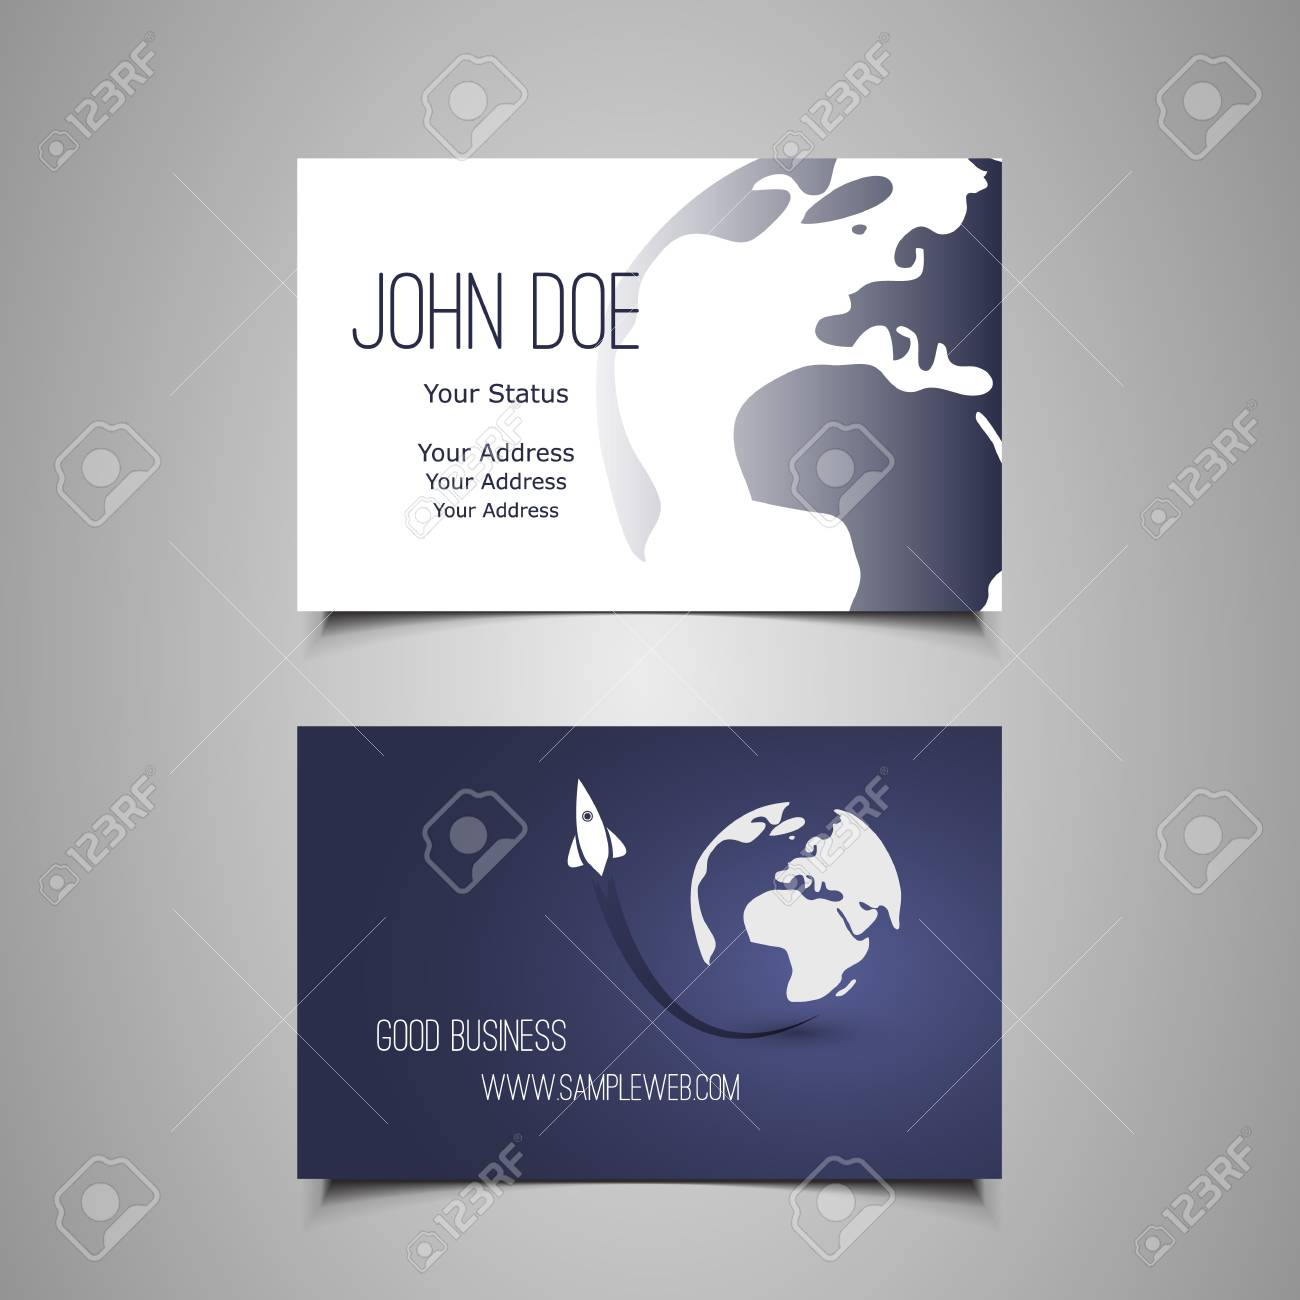 Business Card Template Stock Vector - 19721469